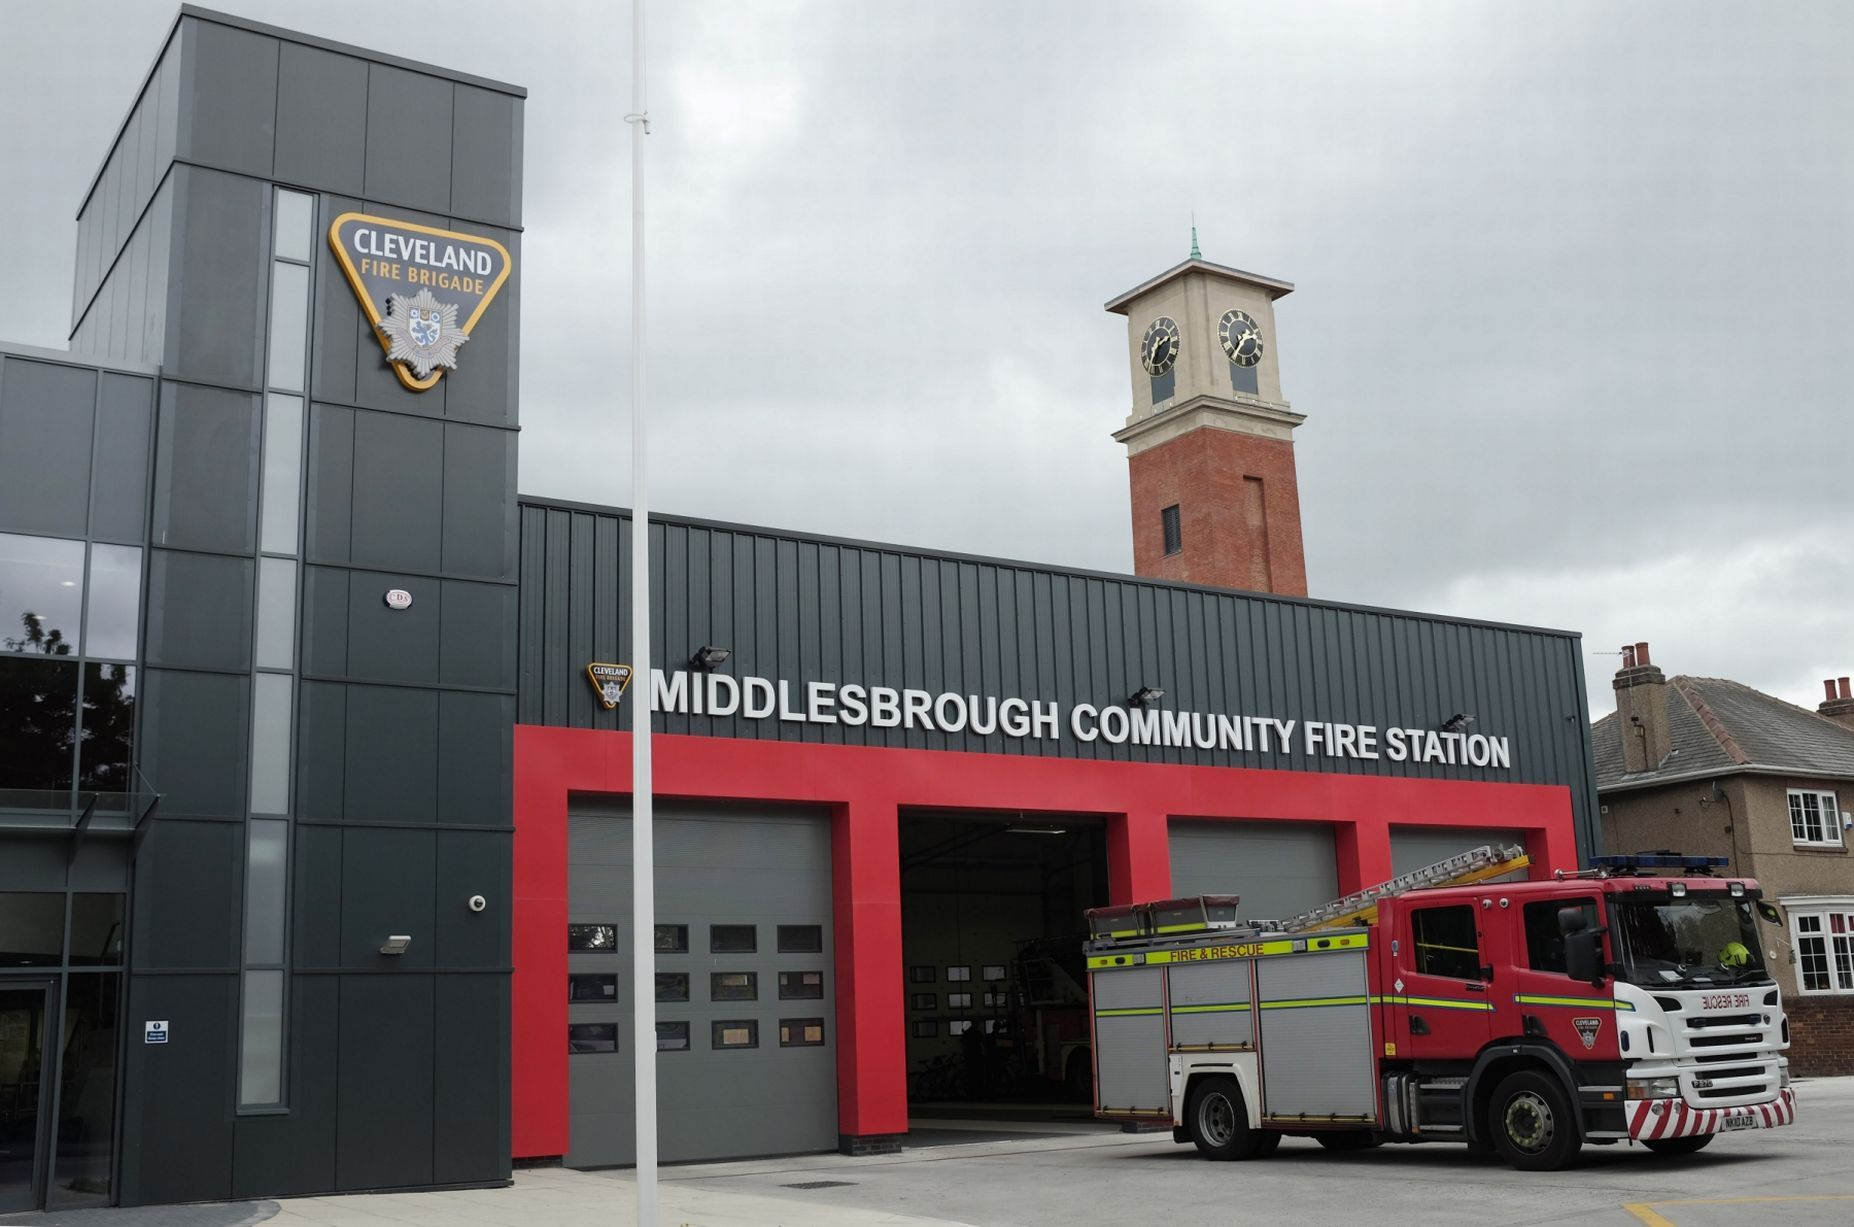 36 Top Pictures Free Fire Alarms Stockton On Tees - 3 Best